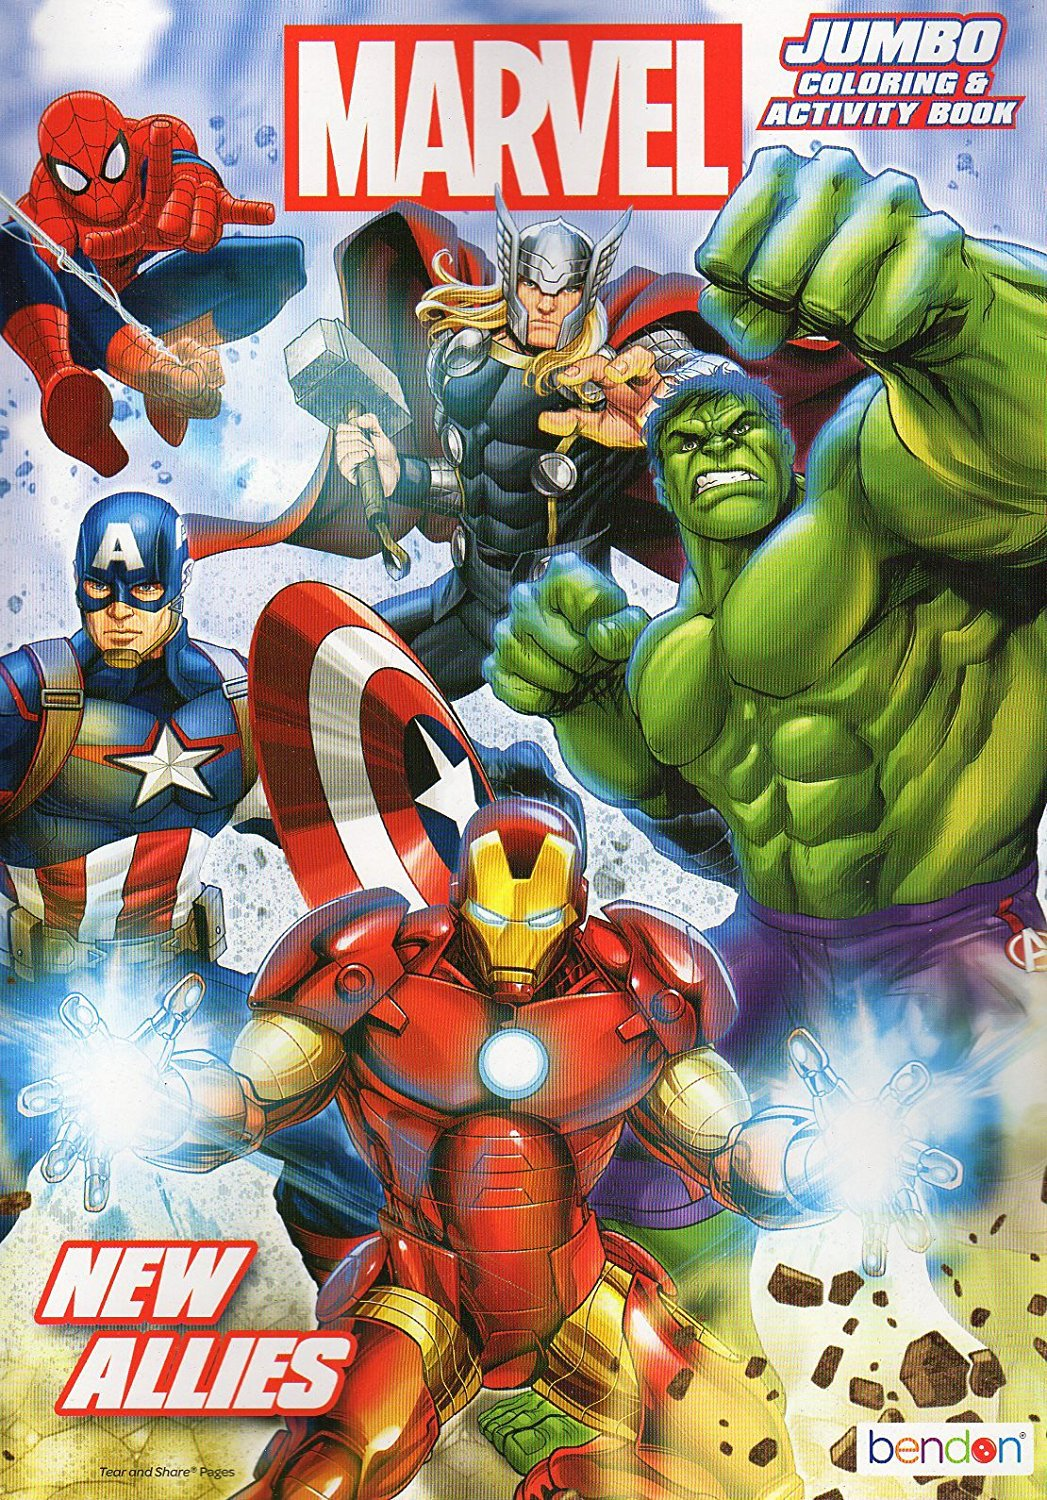 Marvel Heroes New Allies - Jumbo Coloring & Activity Book